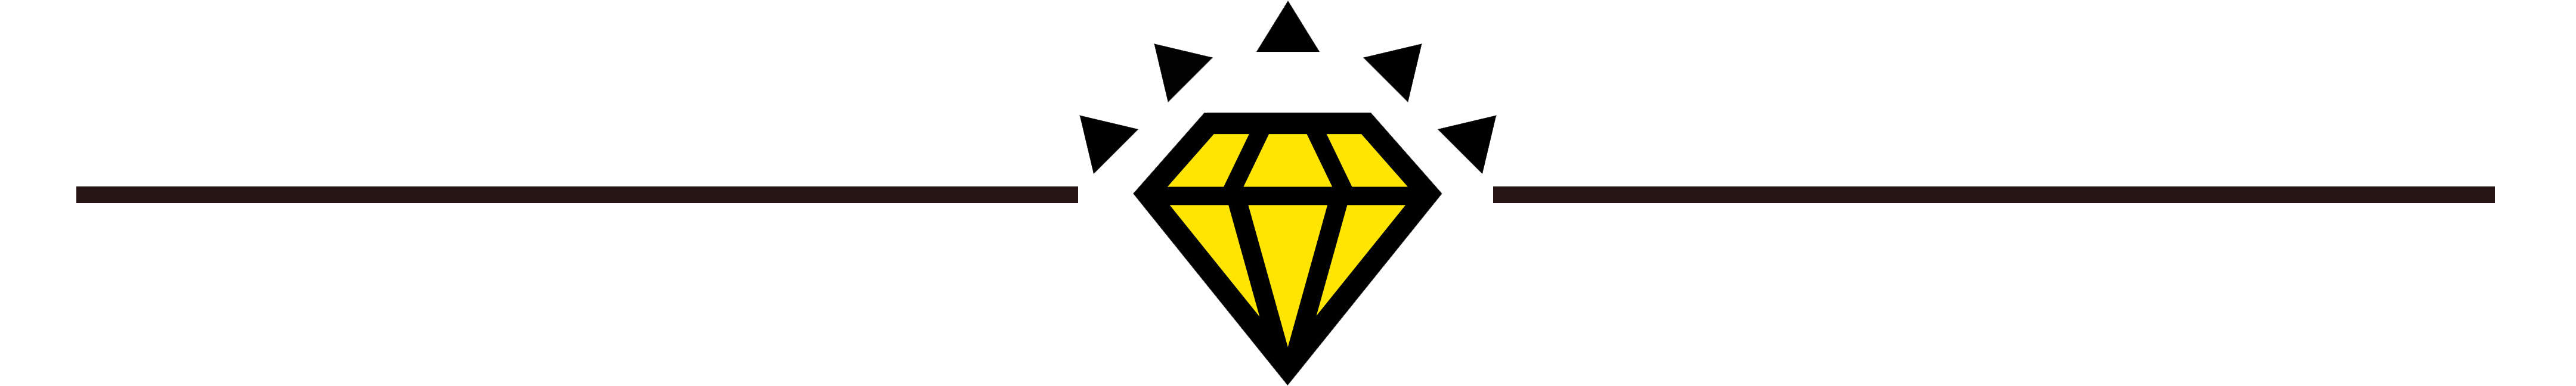 East Coast Granite Diamond Logo